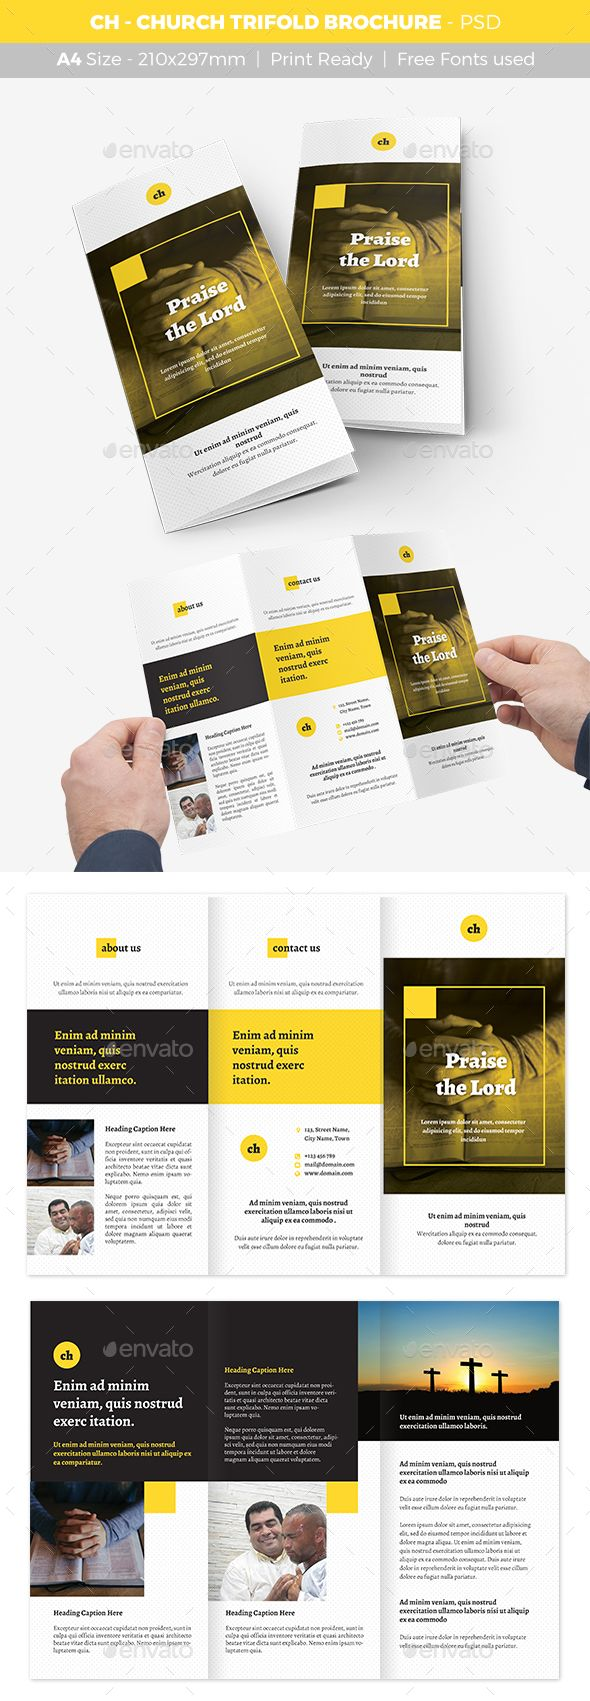 Church Trifold Brochure  -  PSD Template • Only available here! ➝ https://graphicriver.net/item/ch-church-trifold-brochure/17200255?ref=pxcr